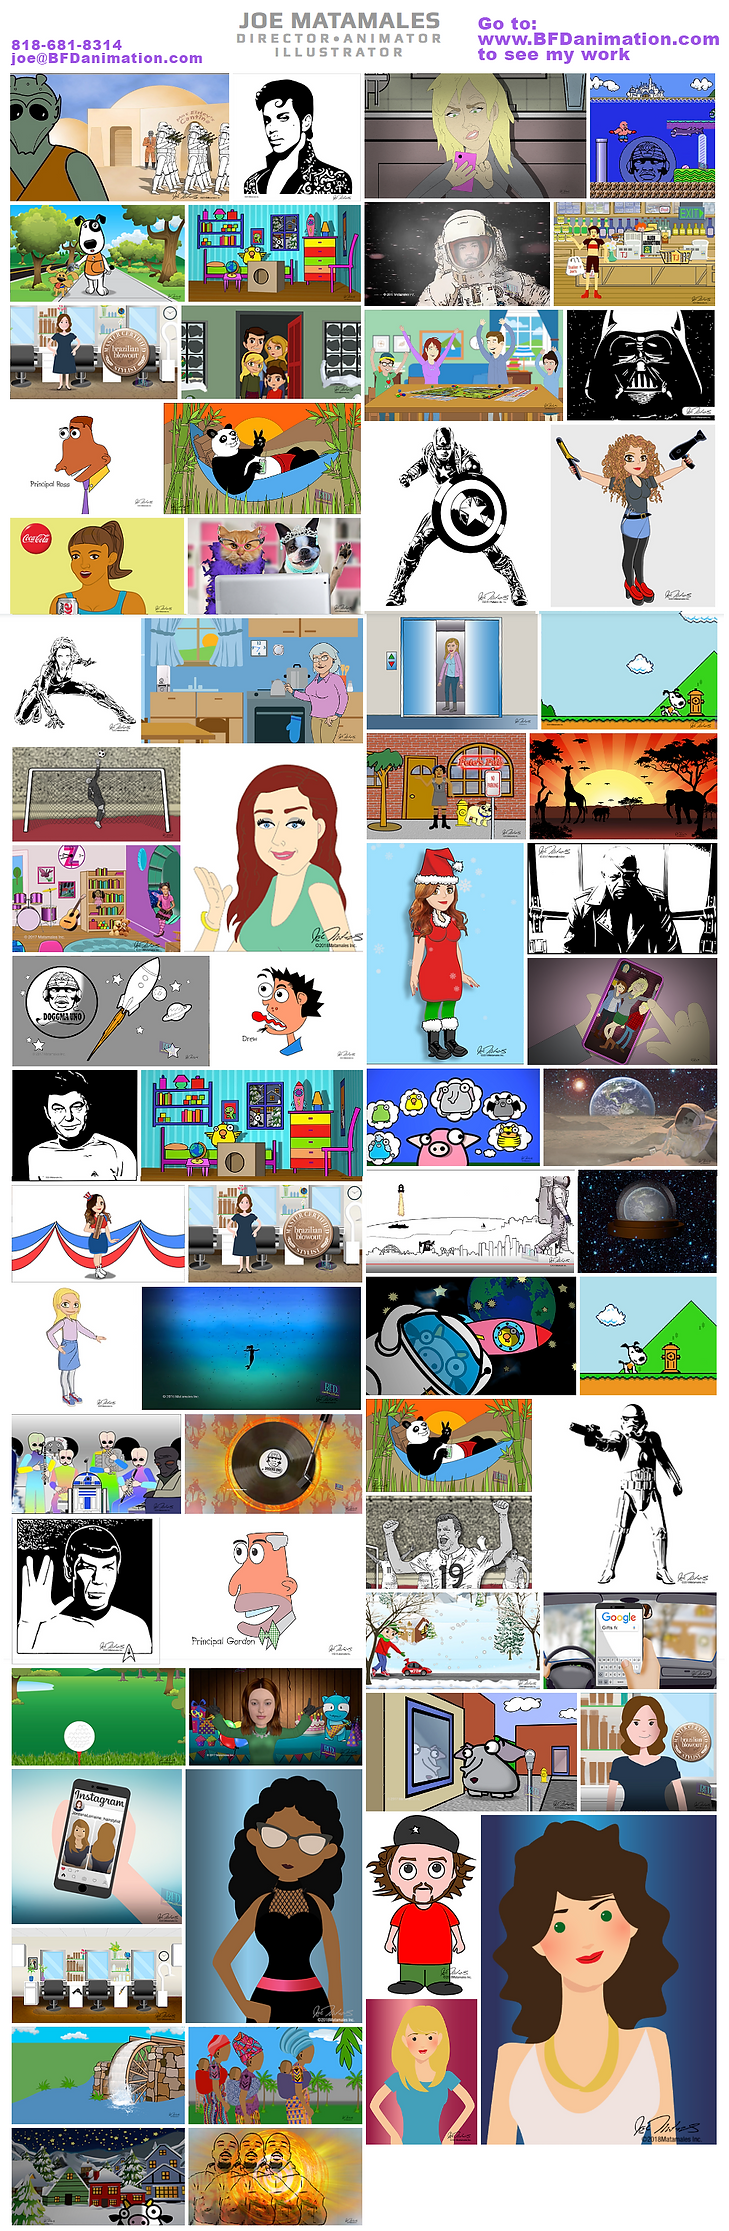 This is a collection of my Artwork. Some are hand-drawn while others are vector-based illustrations created in Adobe Illustrator BrainForest Digital is an Animation production studio. We have over 25 years of production experience. We do it all from script to finished video.  BFD Animation, BrainForest Digital, Joe Matamales, Cartoons, Character Design, Explainer Video, Corporate Video, Commercial, Film, Animation, Motion Graphics, Music Videos, 2D animation, Animator, Music Videos, Vector Art, animatic, Director, Animation Director, Social Media, trailer, design, video games, graphics, Mobile Content, Digital, Graphics Animation, Editing, Demo Reel, Preview, After Effects, Adobe Premiere, PhotoShop, motion comics, Music Videos,